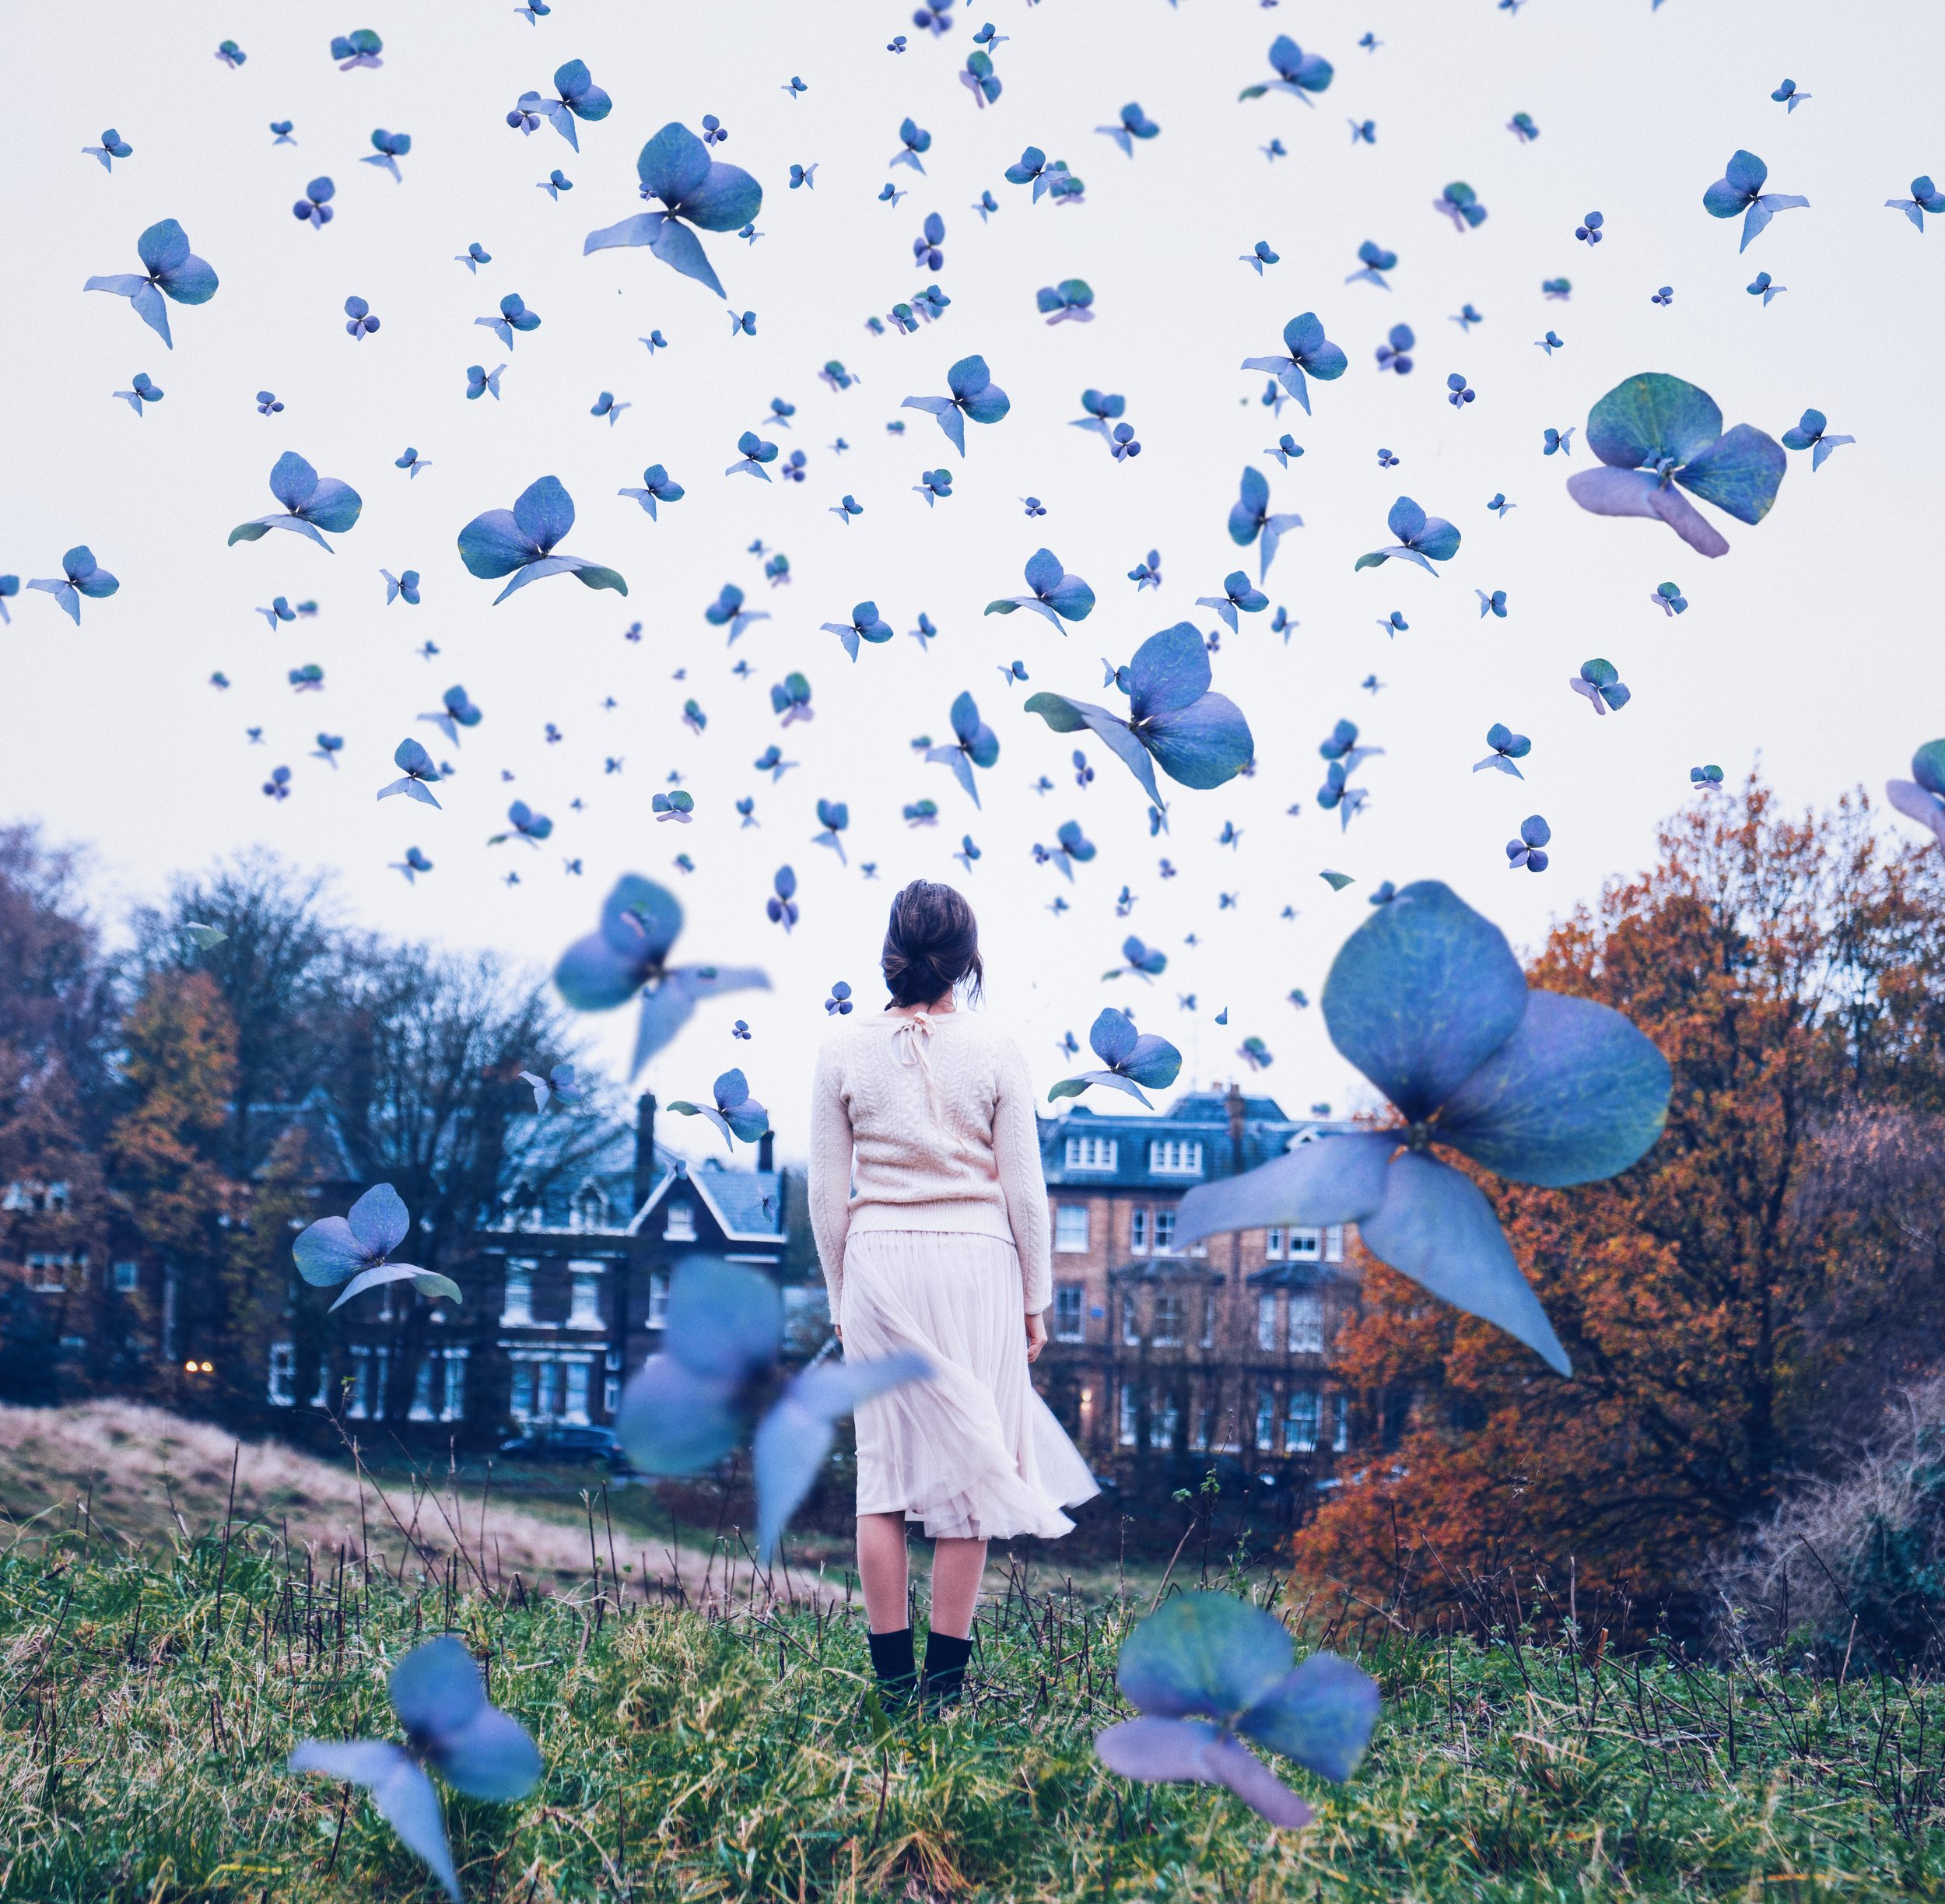 Youtube video with 5 tips How to get creative photo ideas for Instagram. Standing in a meadow of butterflies.